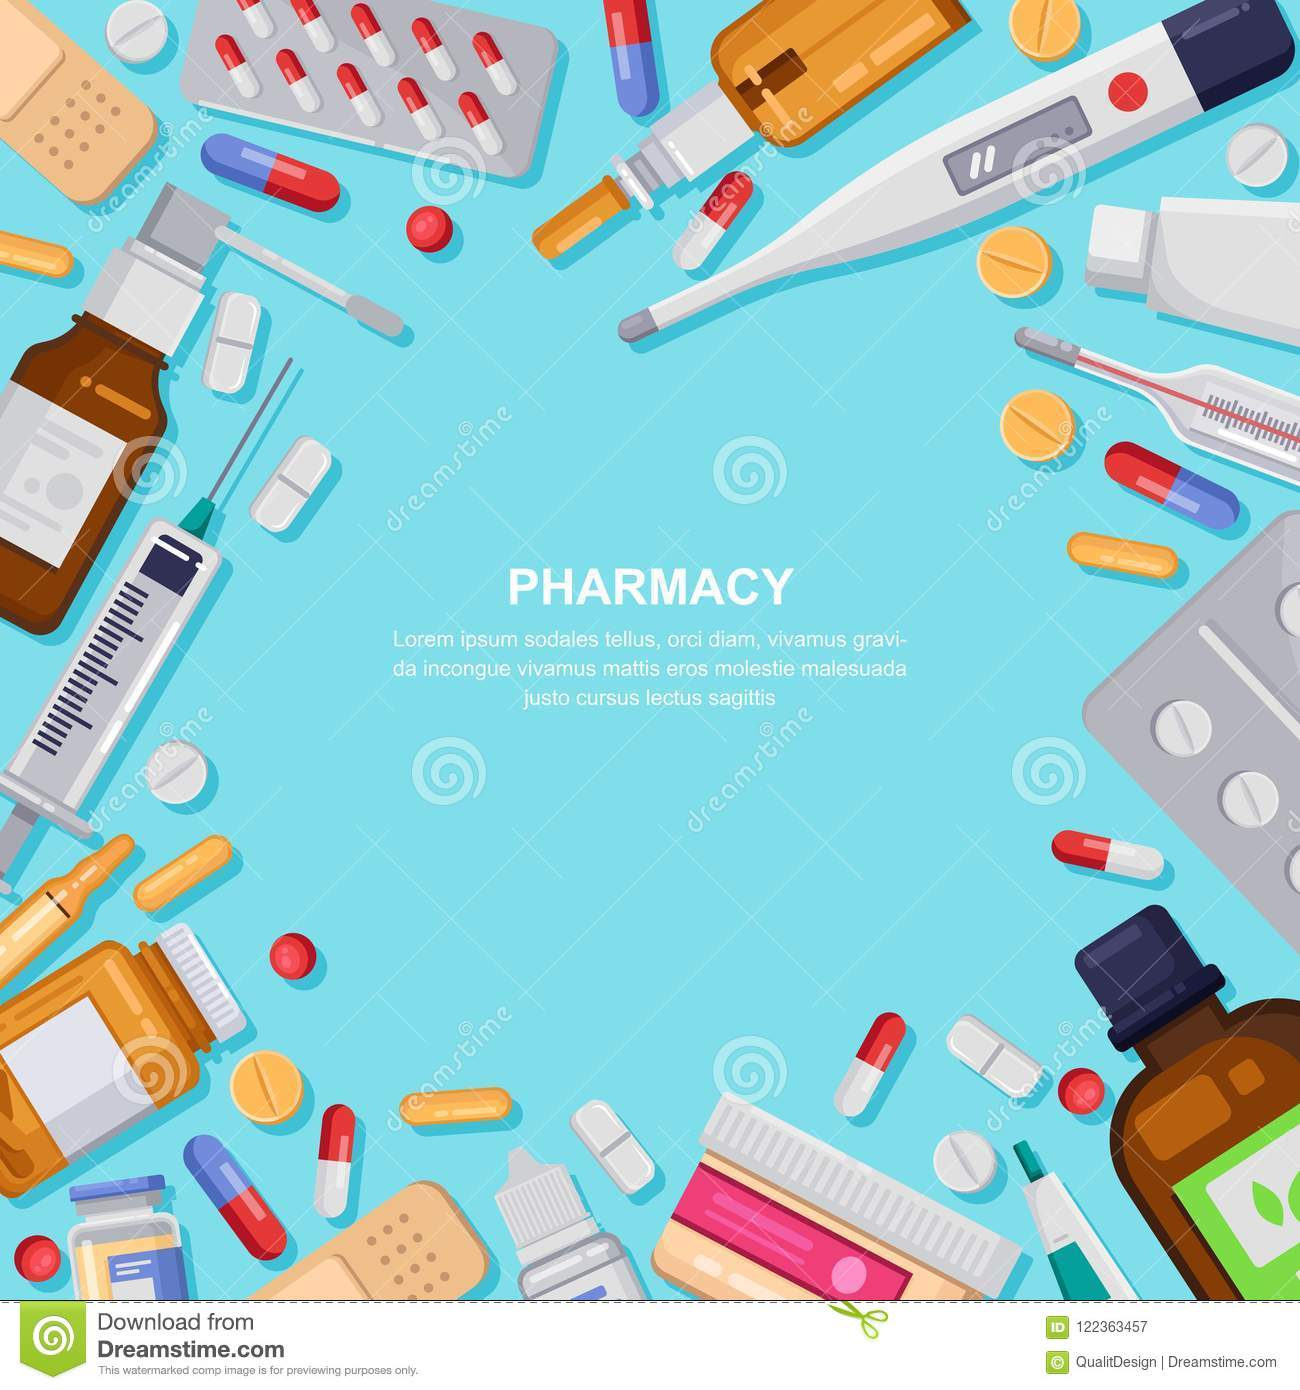 Pharmacy Frame With Pills Drugs Bottles Drugstore Illustration Medicine Healthcare Banner Poster Background Stock Vector Illustration Of Flat Cartoon 122363457